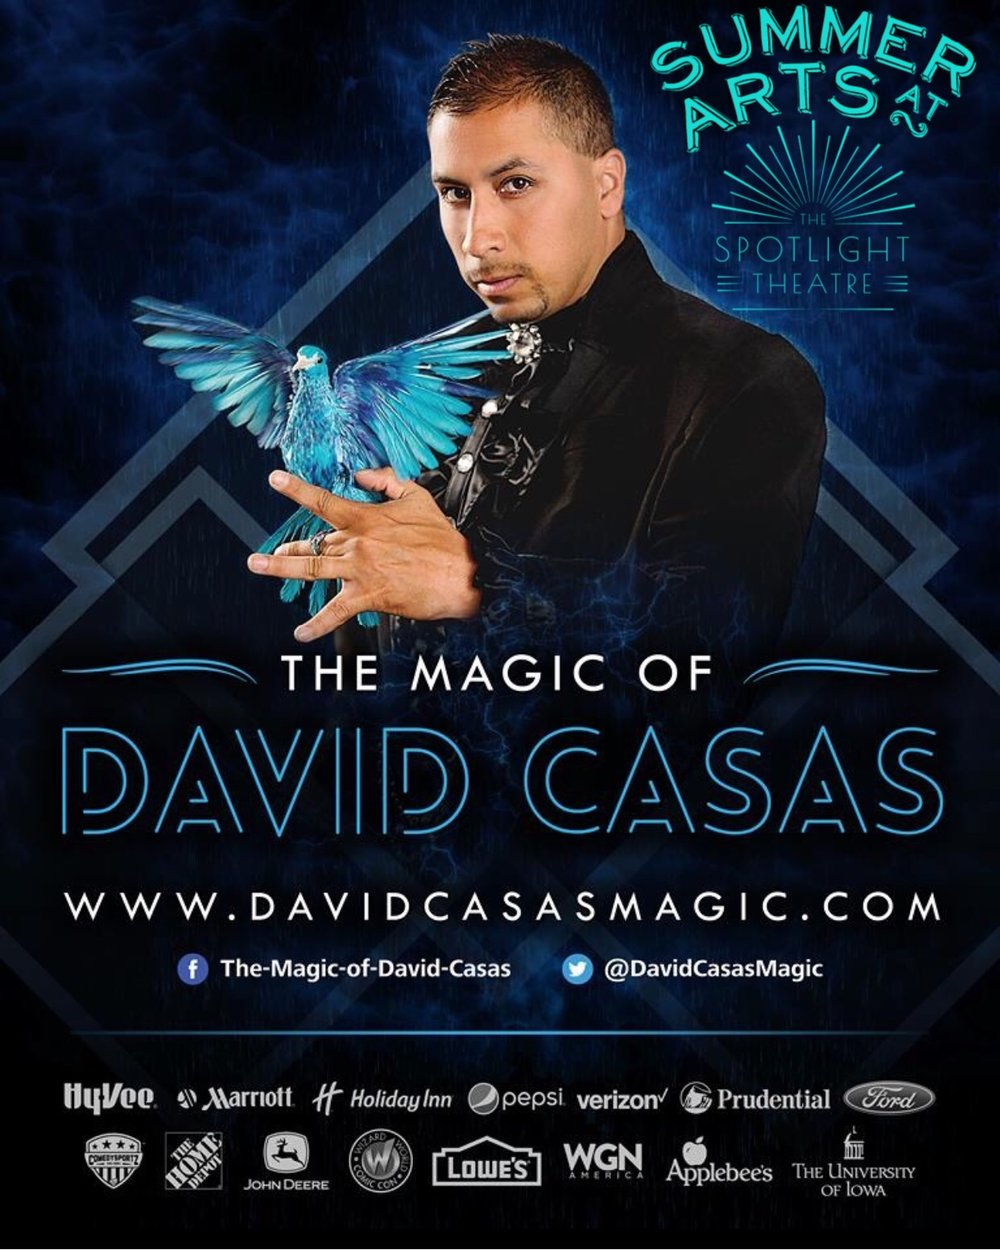 David Casas Magic Camp - July 8th - 12th